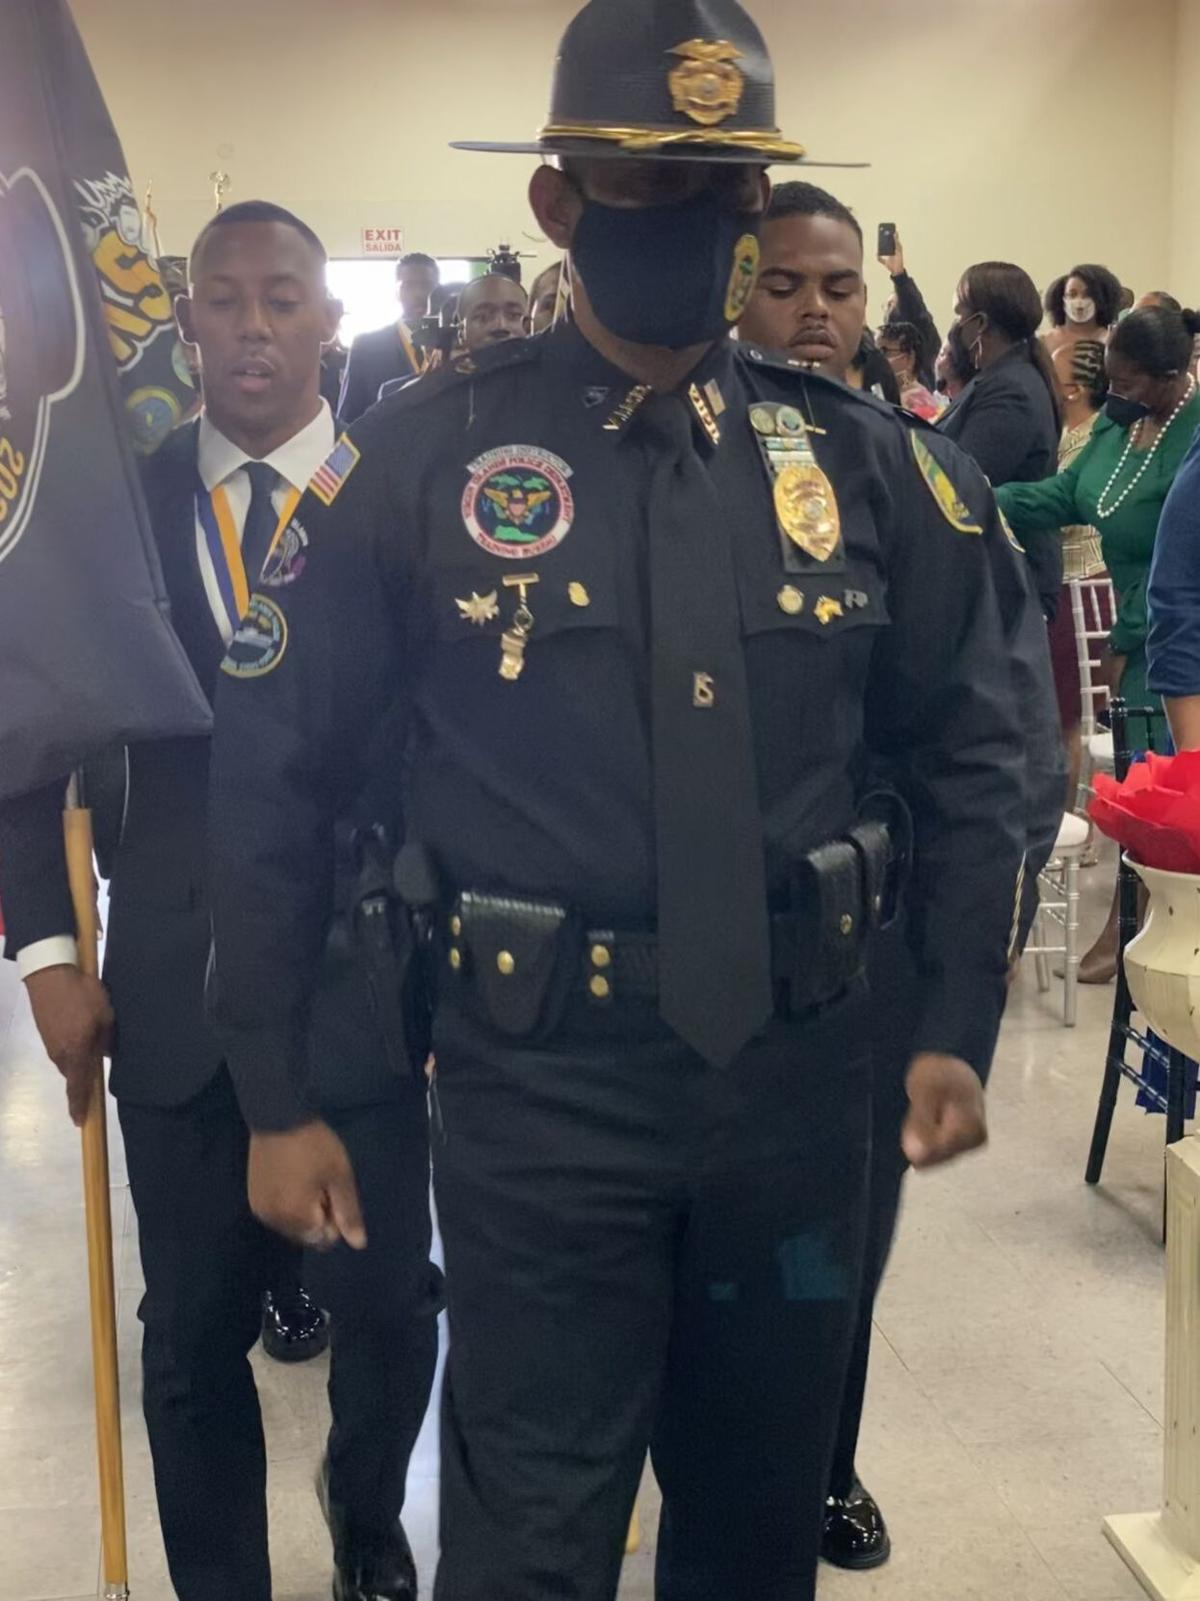 VIPD commencement